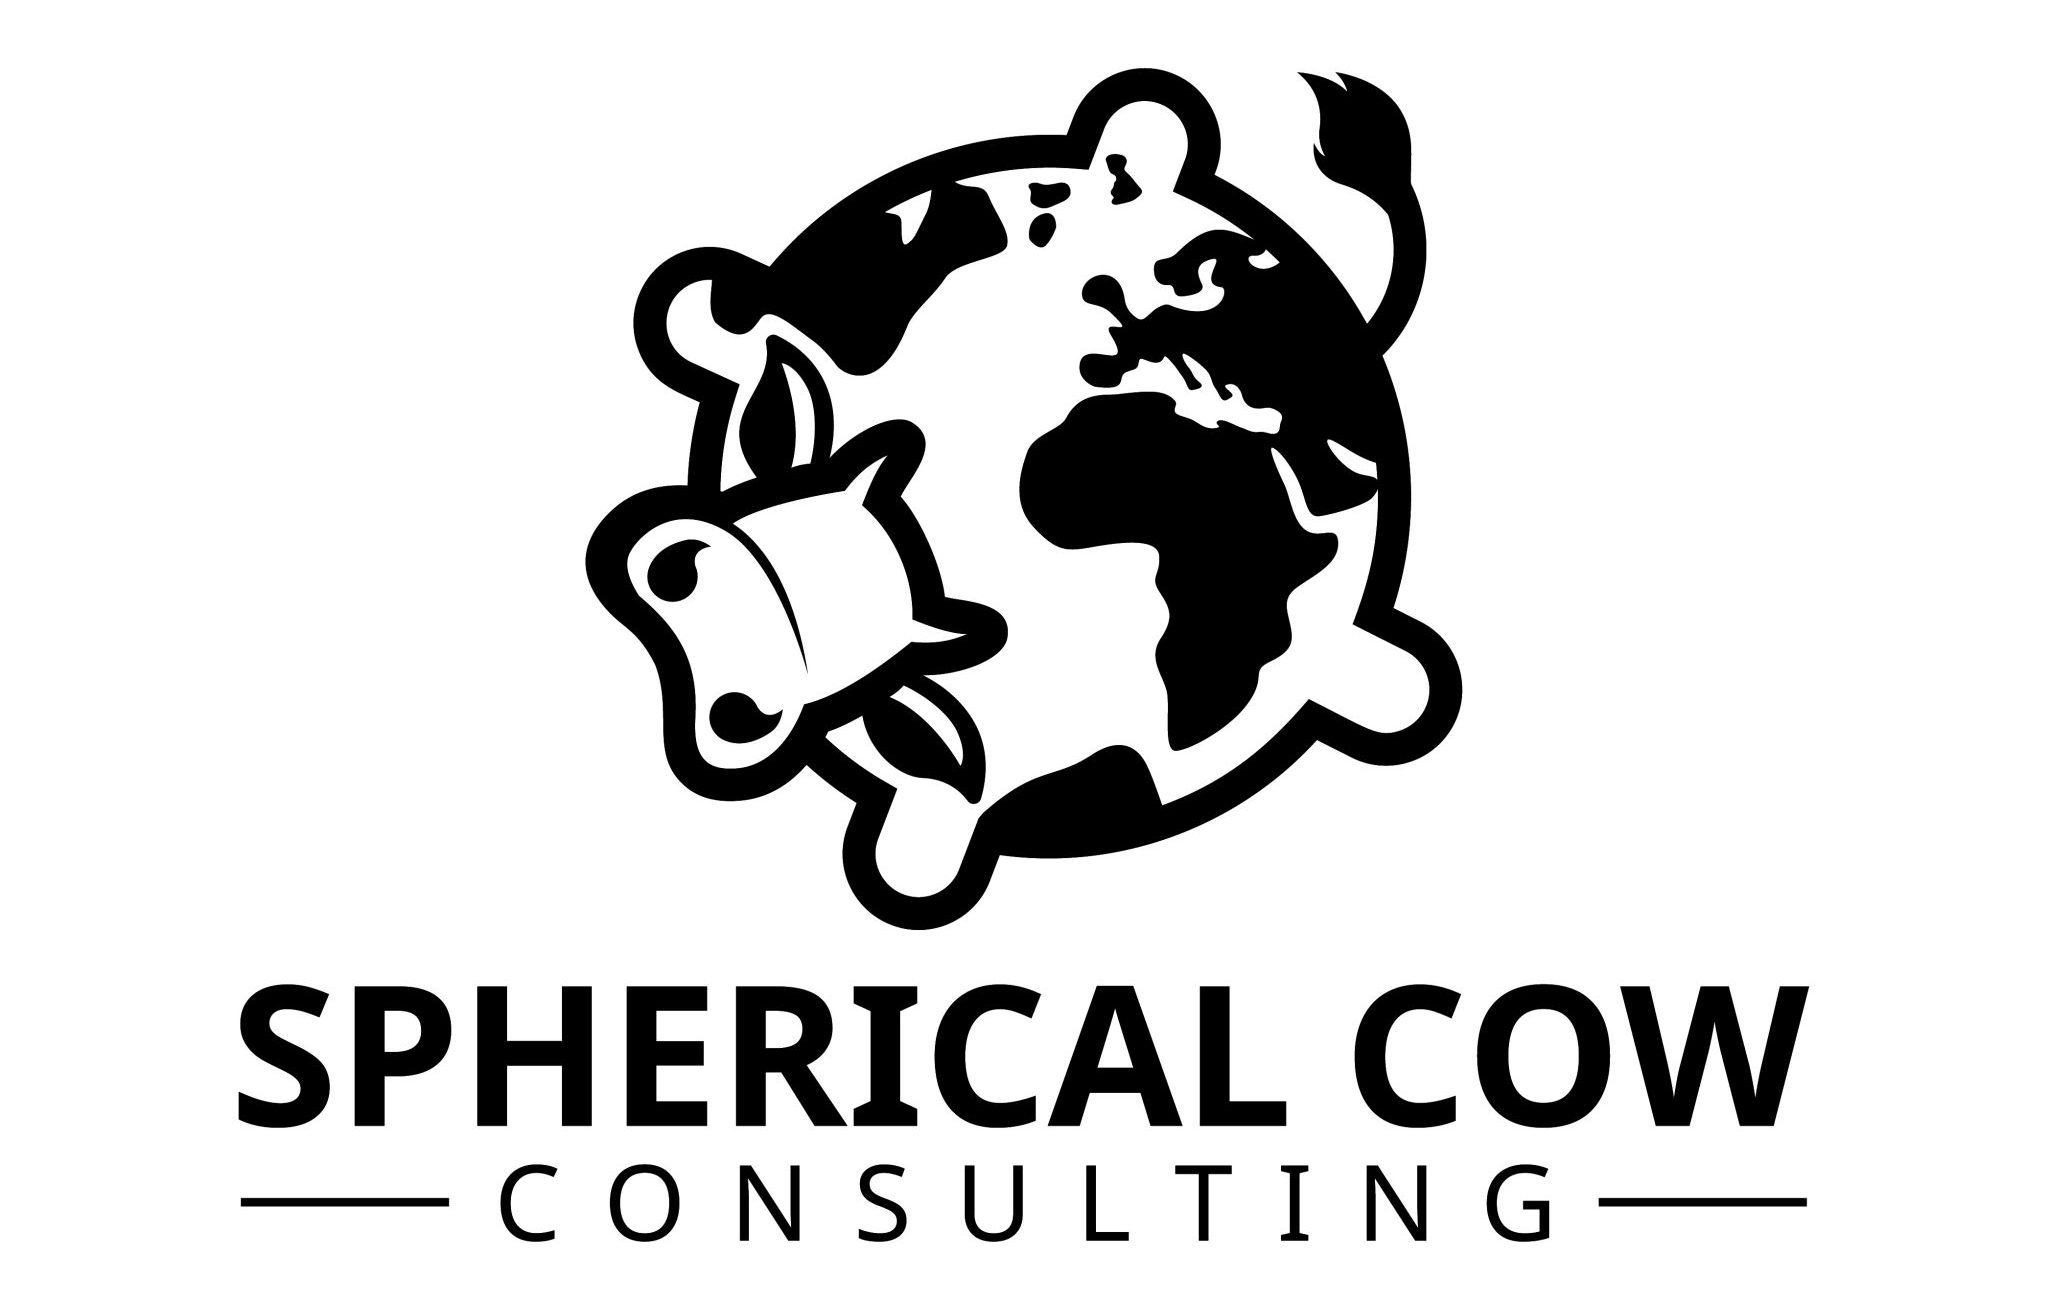 Spherical Cow Consulting